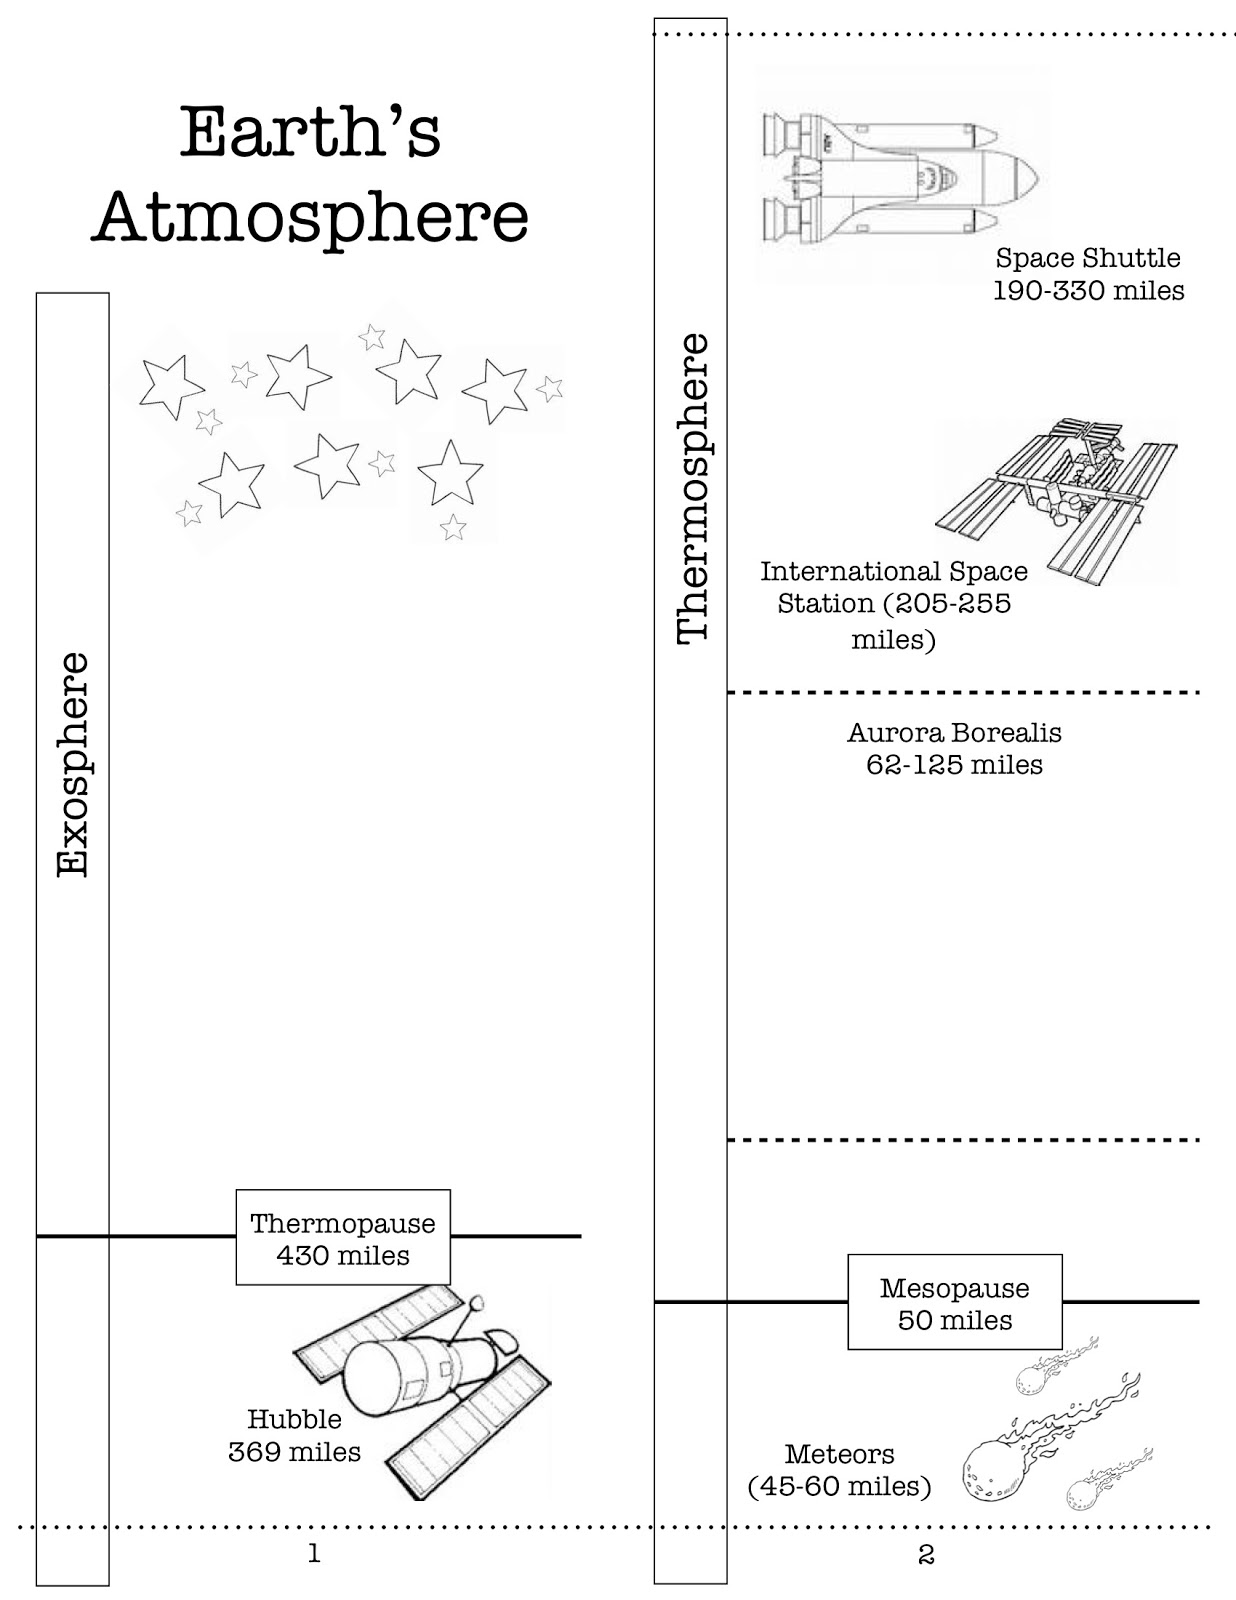 Earth Layers Diagram Worksheet 4 Pin Cdi Wiring Homeschooling With A Classical Twist 39s Atmosphere